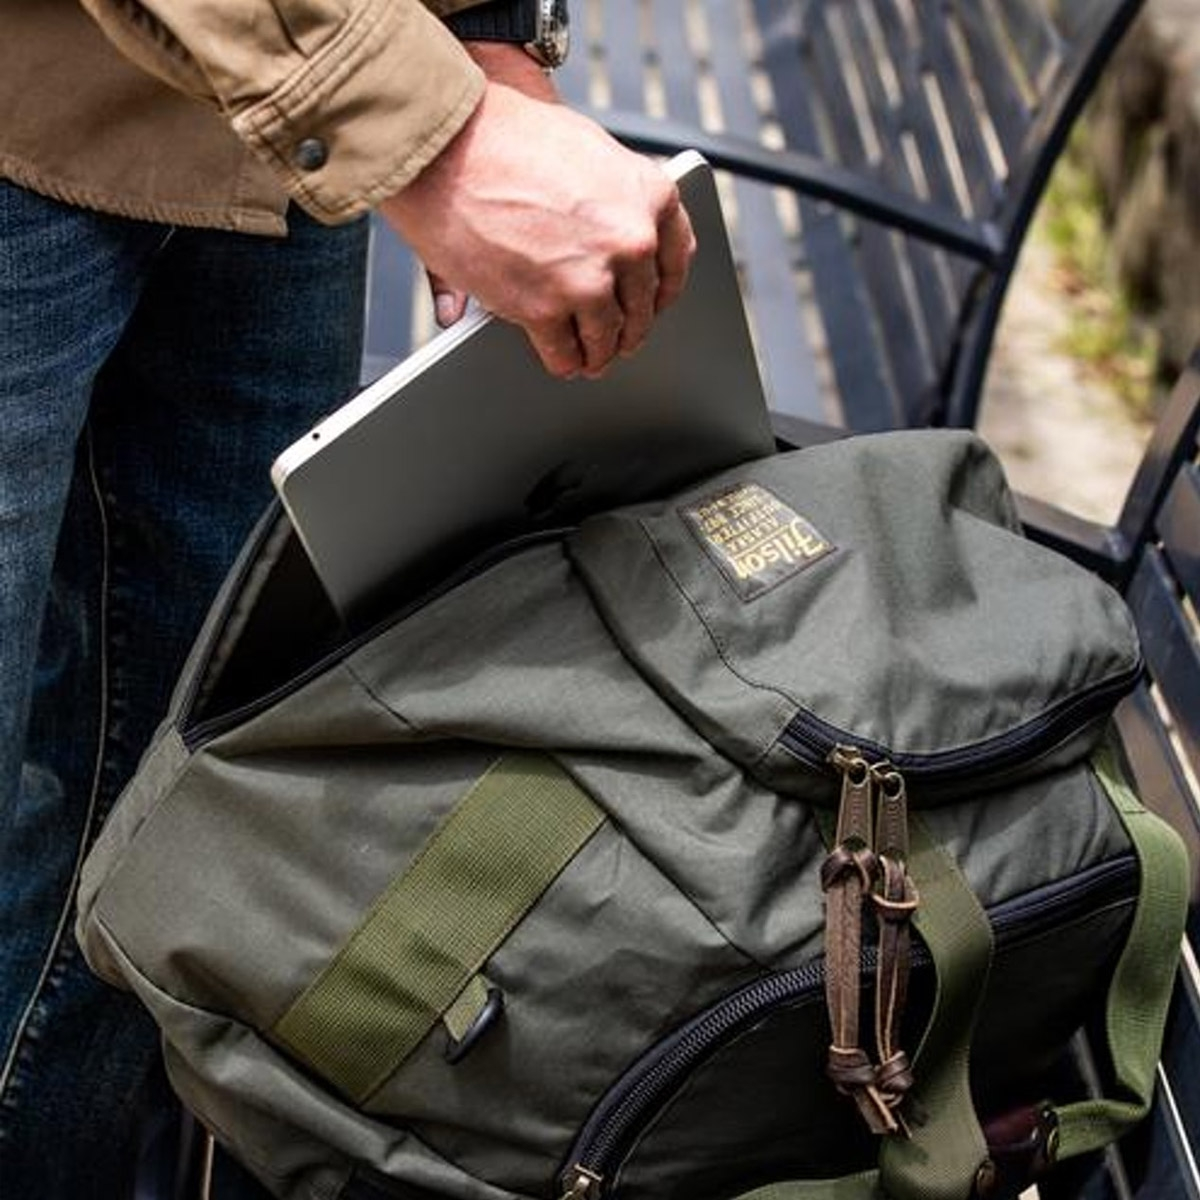 Filson Duffle Pack 20019935, versatile, strong and lightweight travel-companion